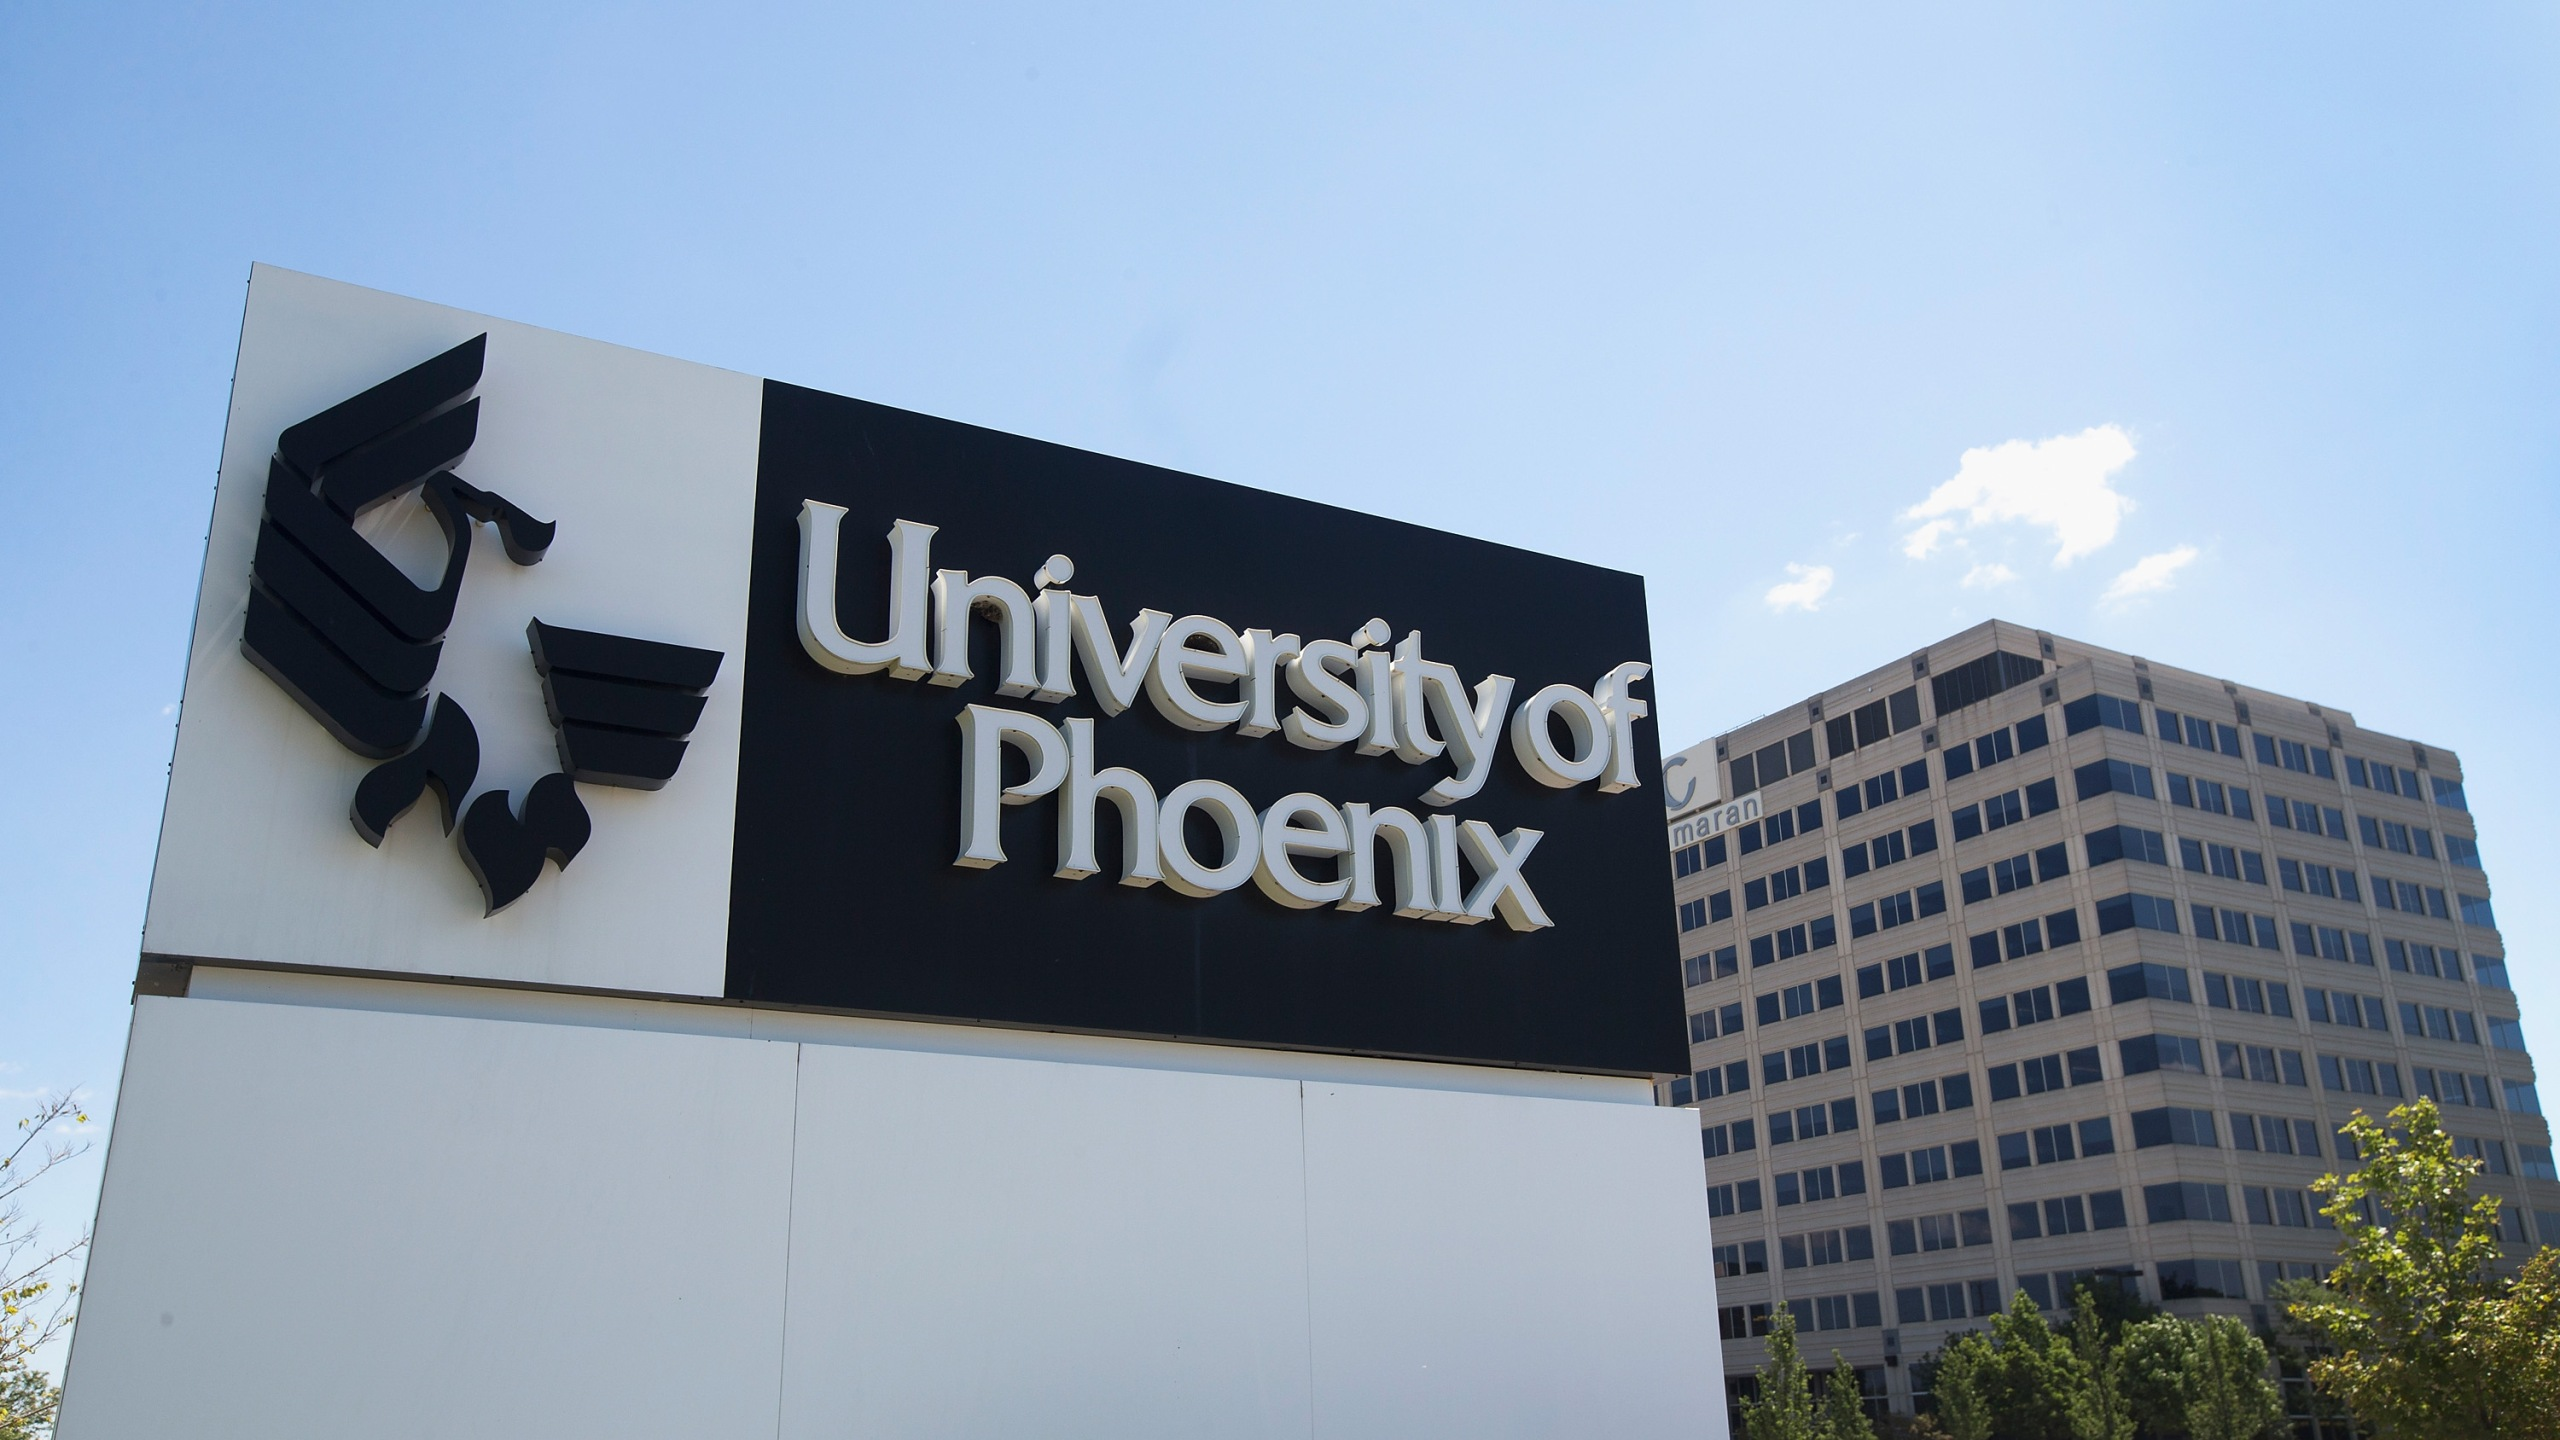 A sign marks the location of the University of Phoenix Chicago Campus on July 30, 2015 in Schaumburg, Illinois. (Credit: Scott Olson/Getty Images)